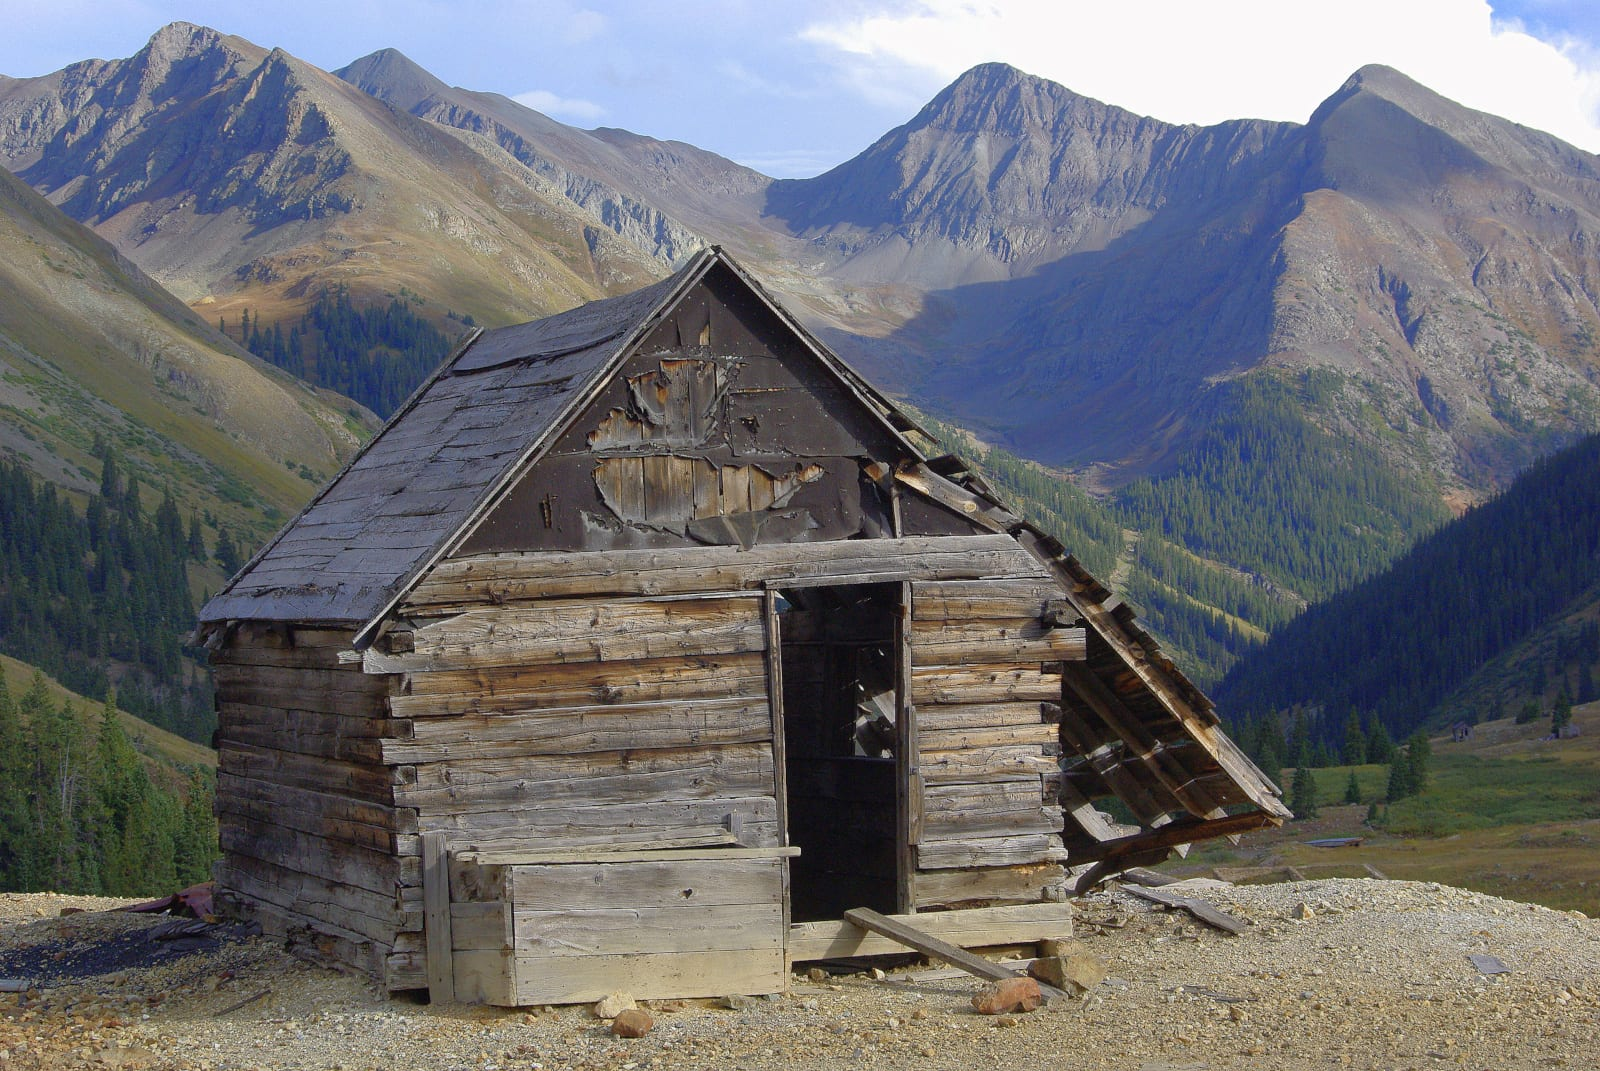 Mountain Living Colorado Abandoned Cabin on Mountainside